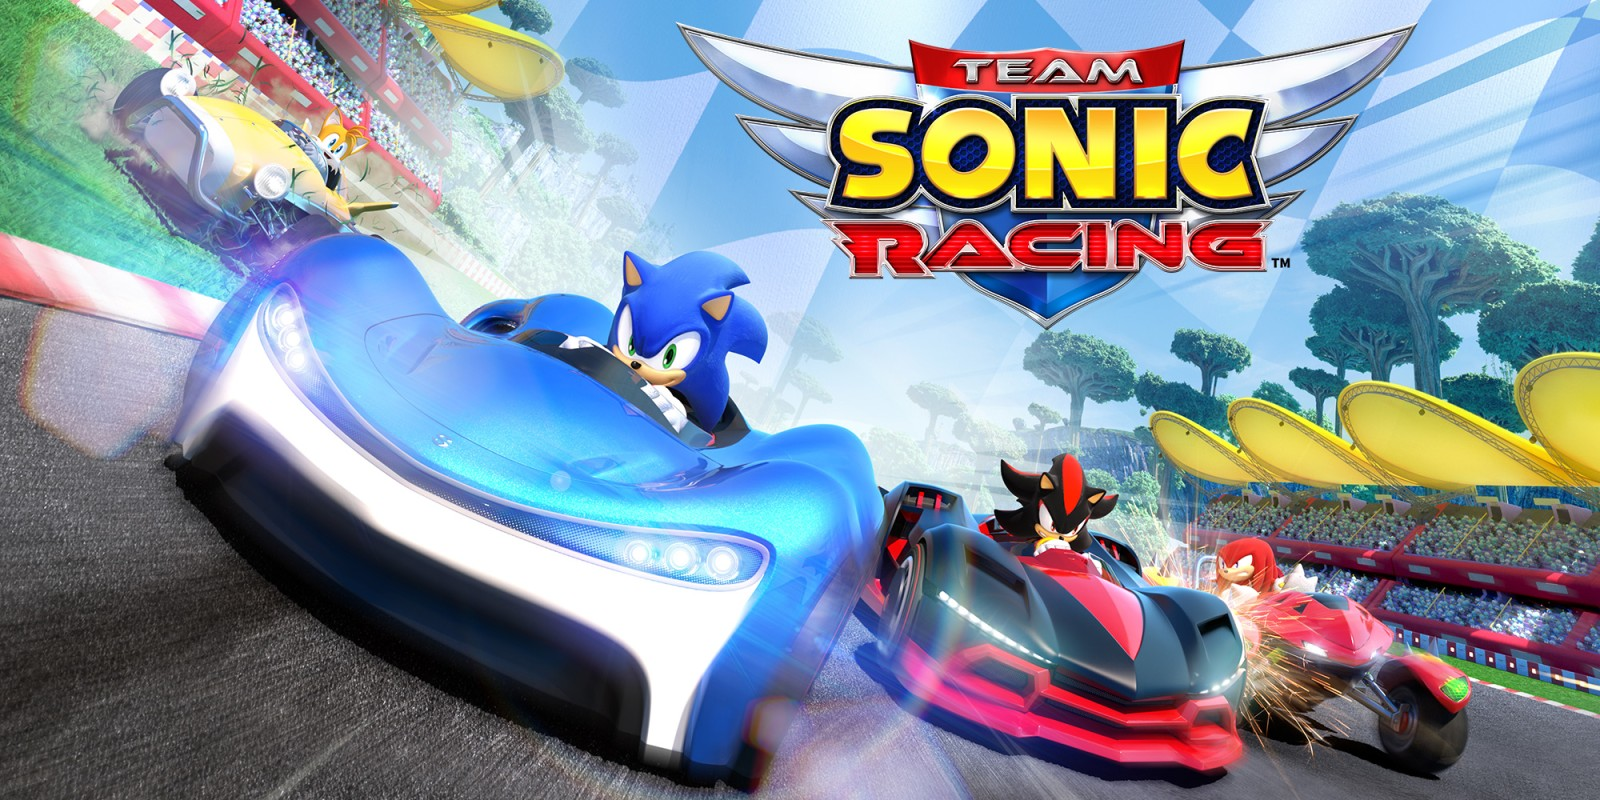 Last Game You Finished And Your Thoughts V3.0 - Page 38 H2x1_NSwitch_TeamSonicRacing_image1600w